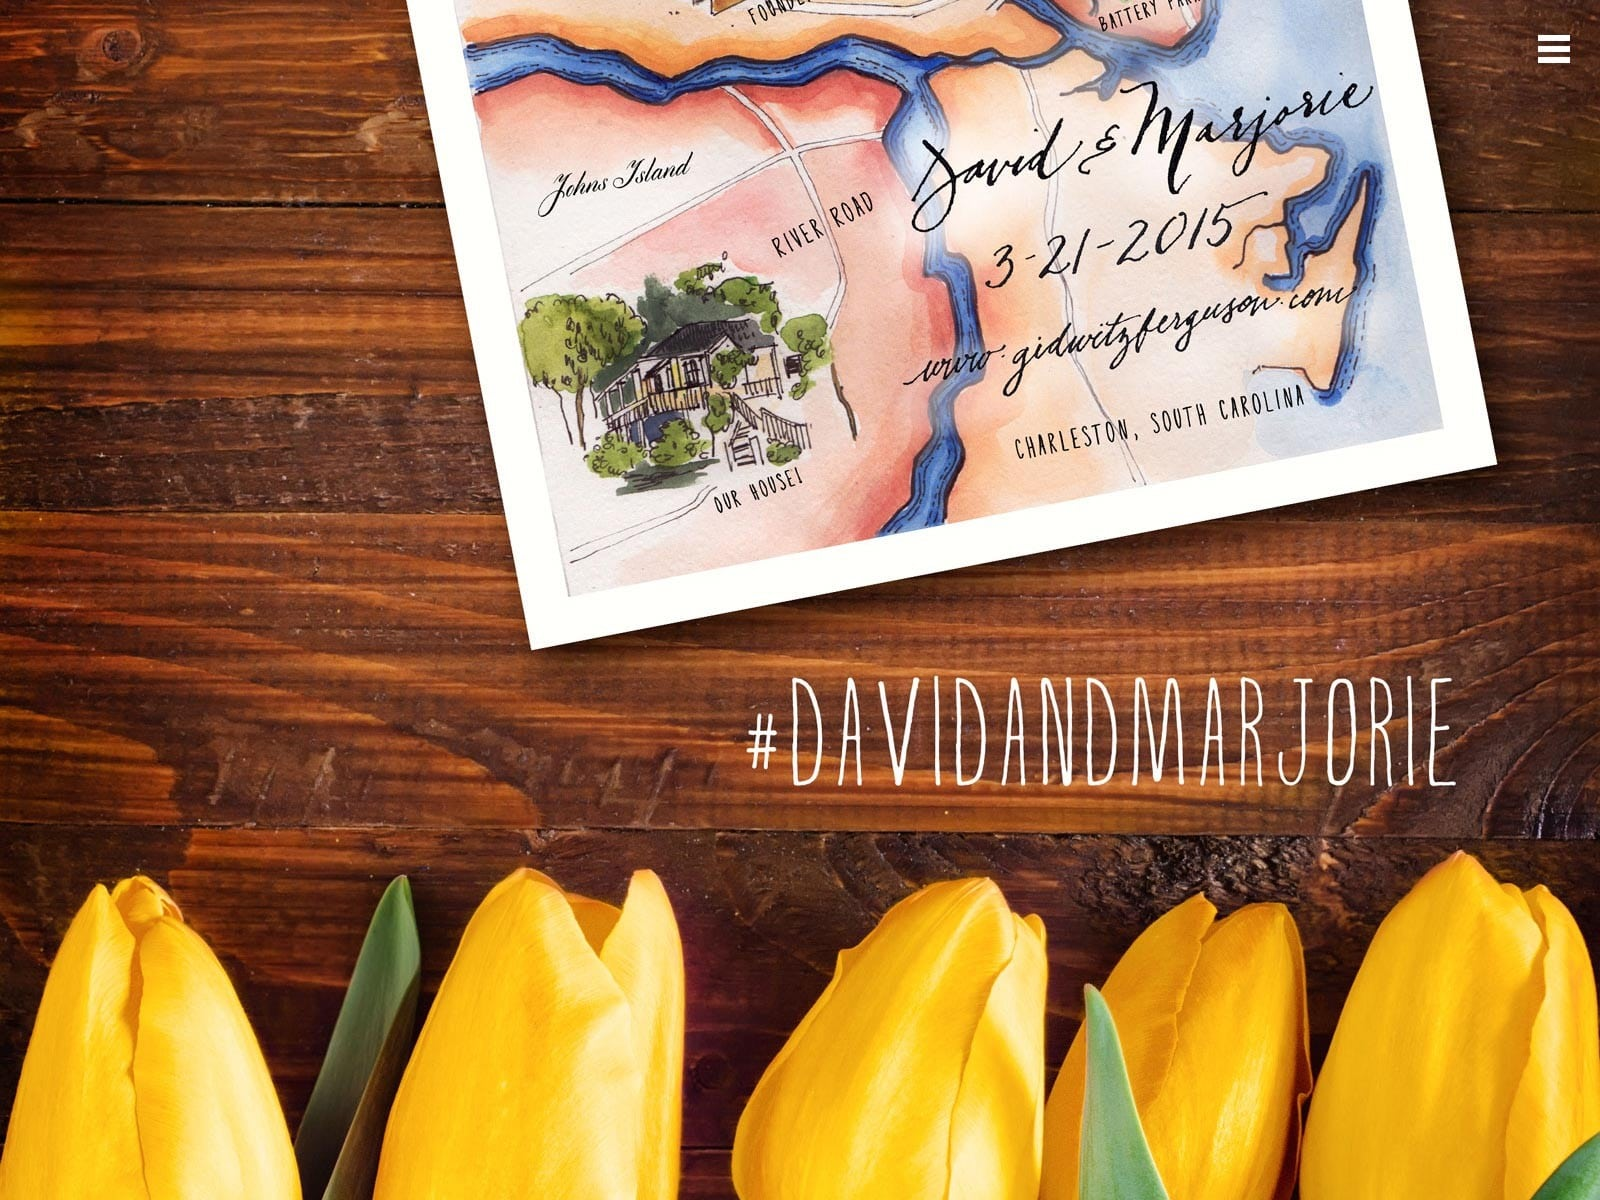 david-and-marjorie-wedding-website-2